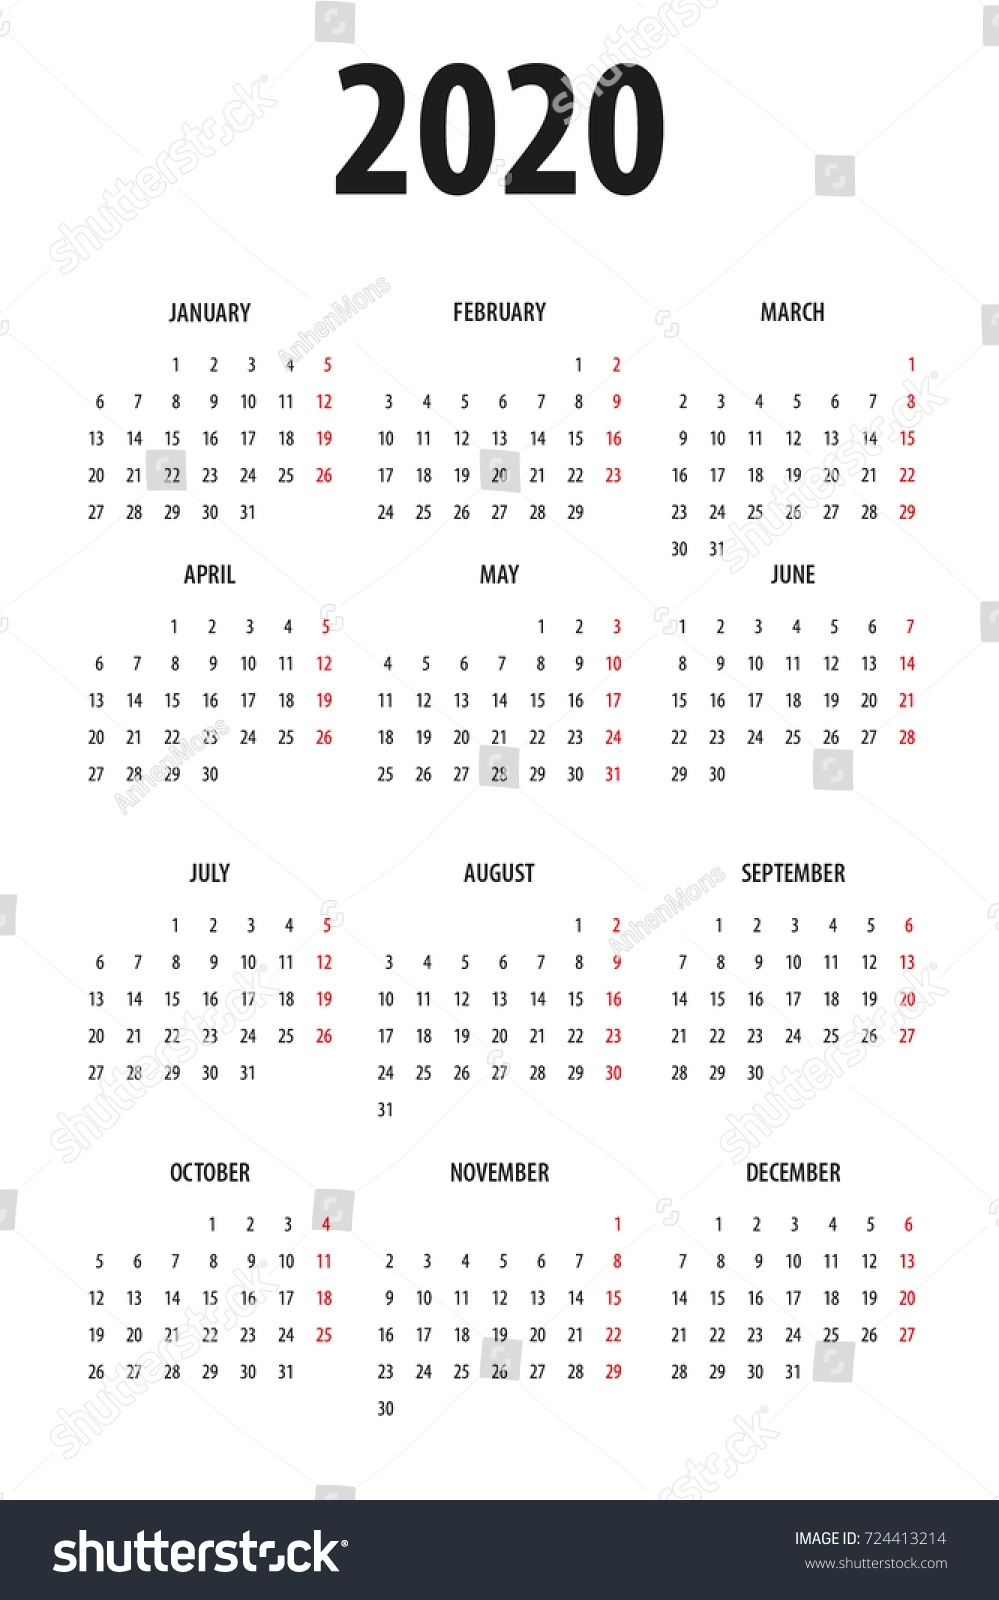 Simple Calendar Template 2020 On White Stock Vector (Royalty Free with regard to 2020 Calendar Starting On Monday